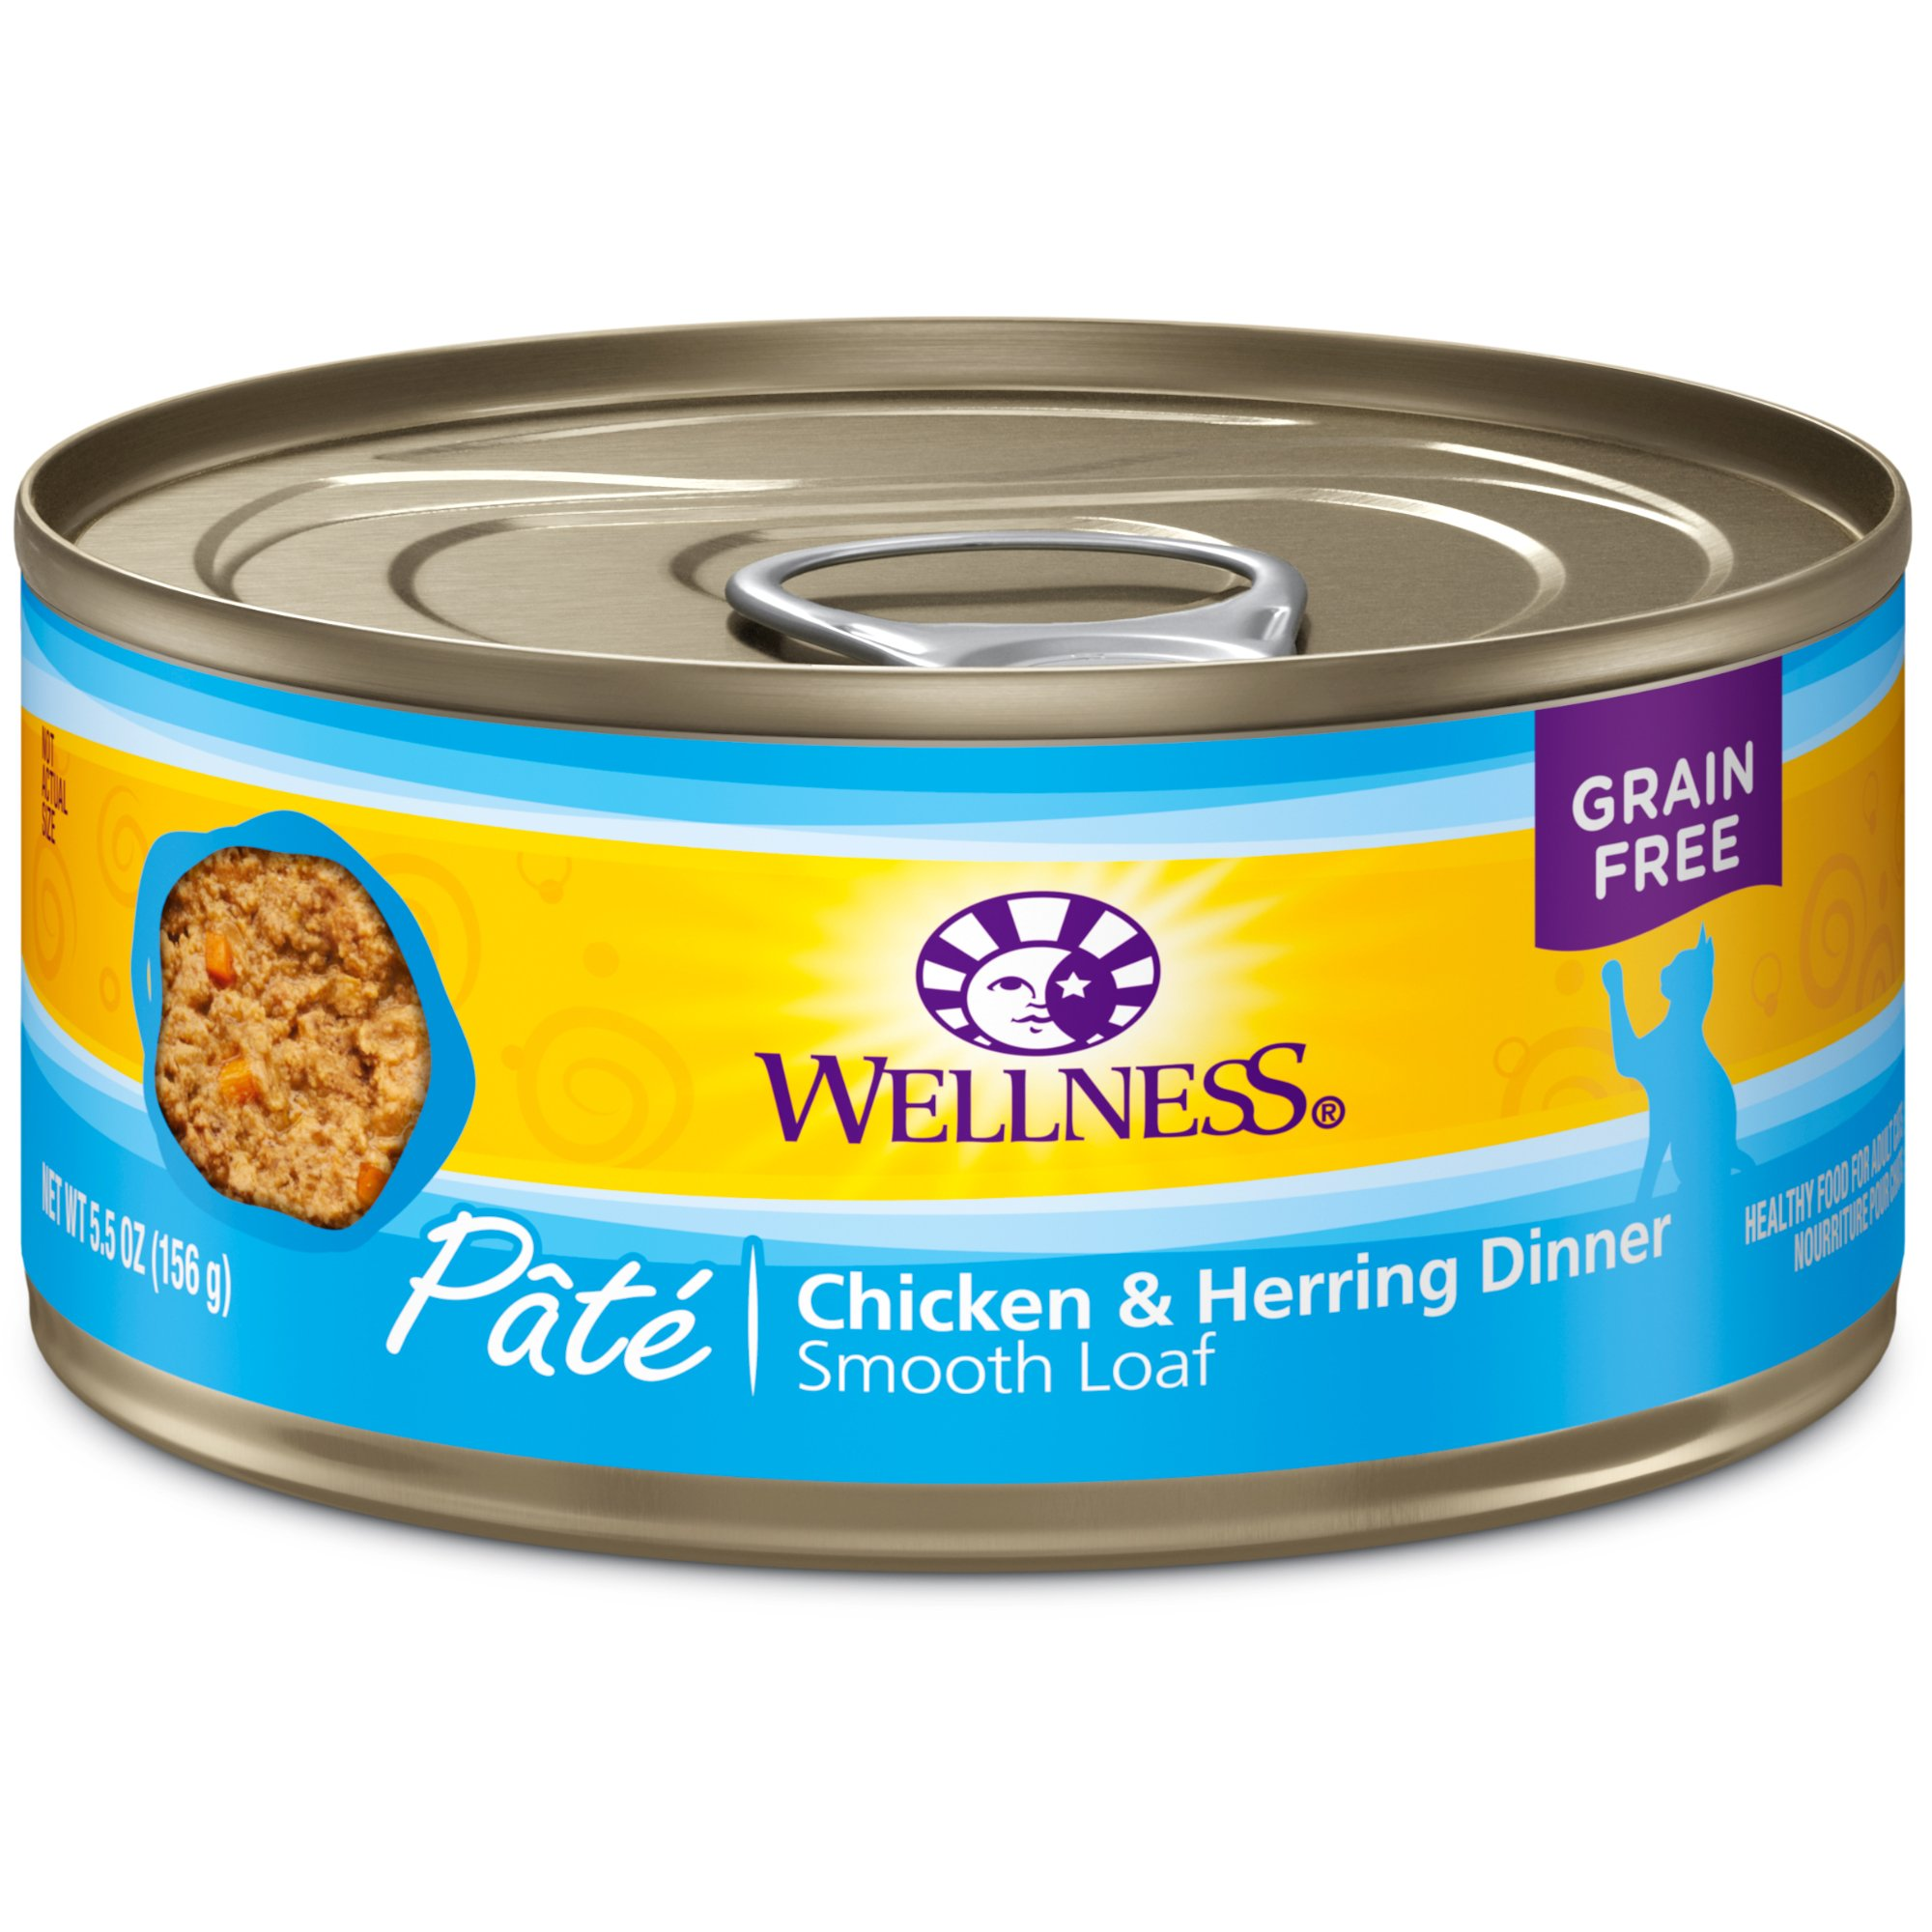 Wellness Natural Grain Free Wet Canned Cat Food, Chicken & Herring Pate, 5.5-Ounce Can (Pack Of 24) by Wellness Natural Pet Food